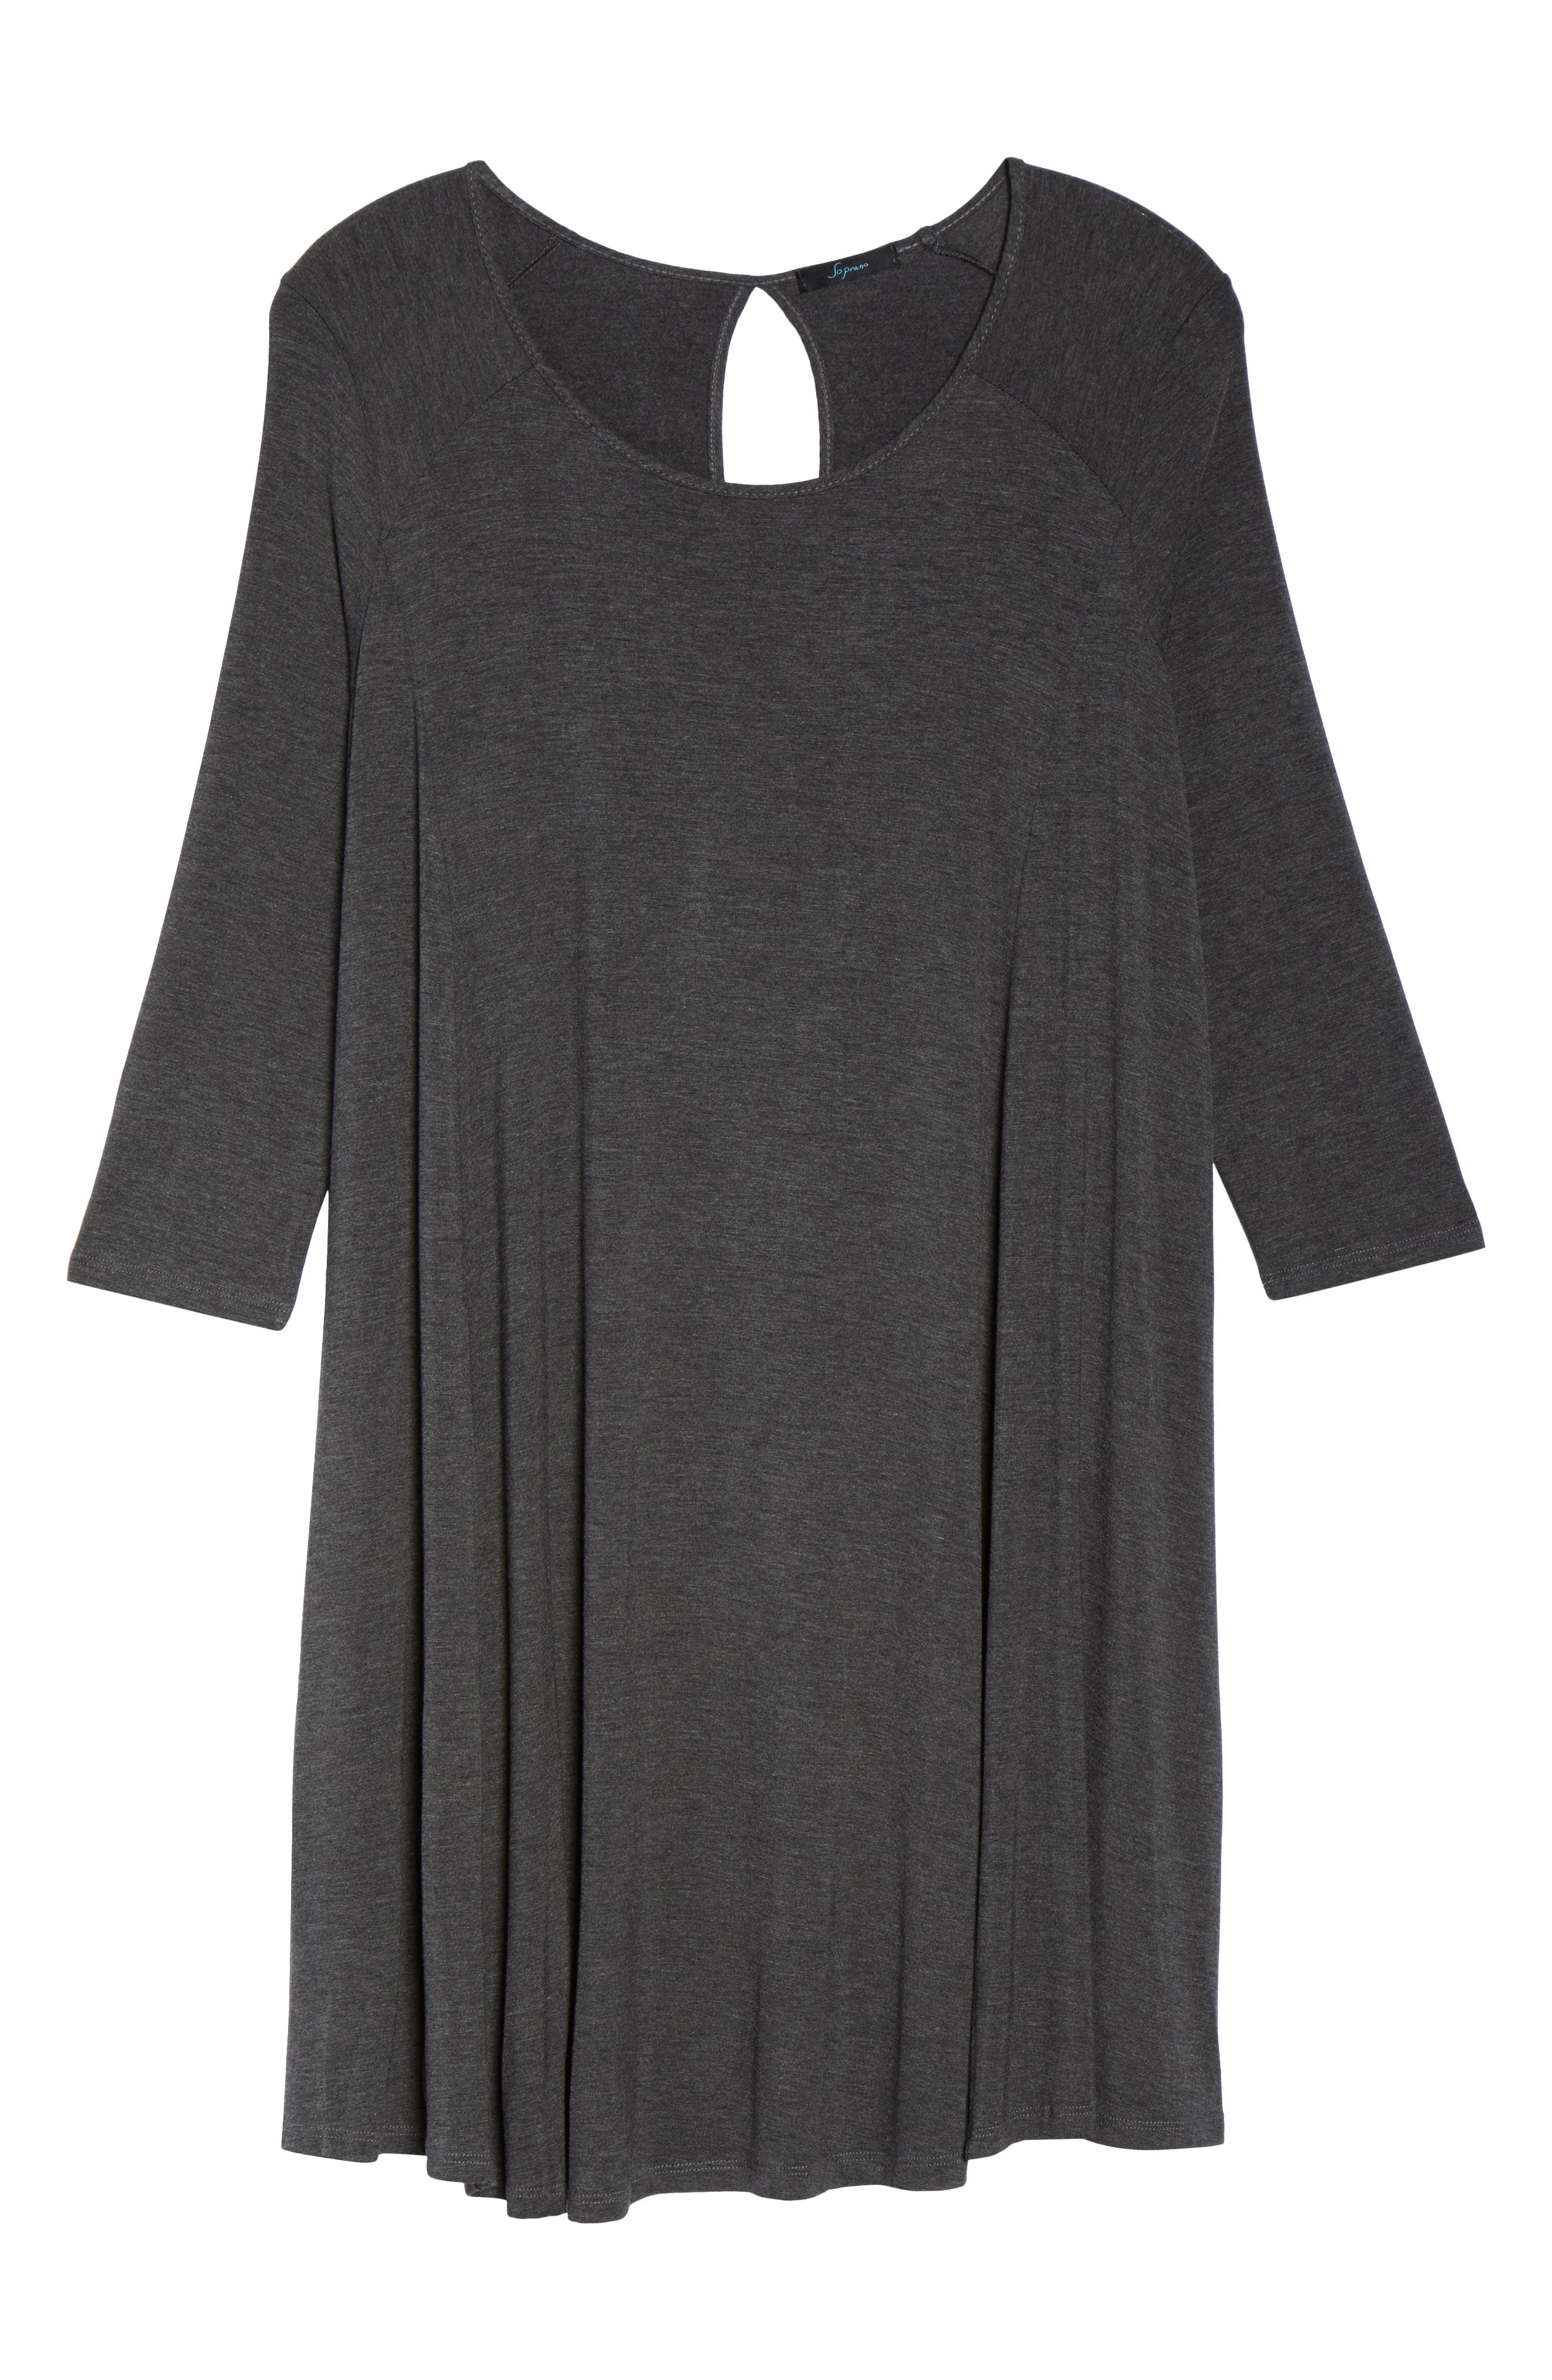 Swing Dress,                             Alternate thumbnail 6, color,                             Charcoal Grey